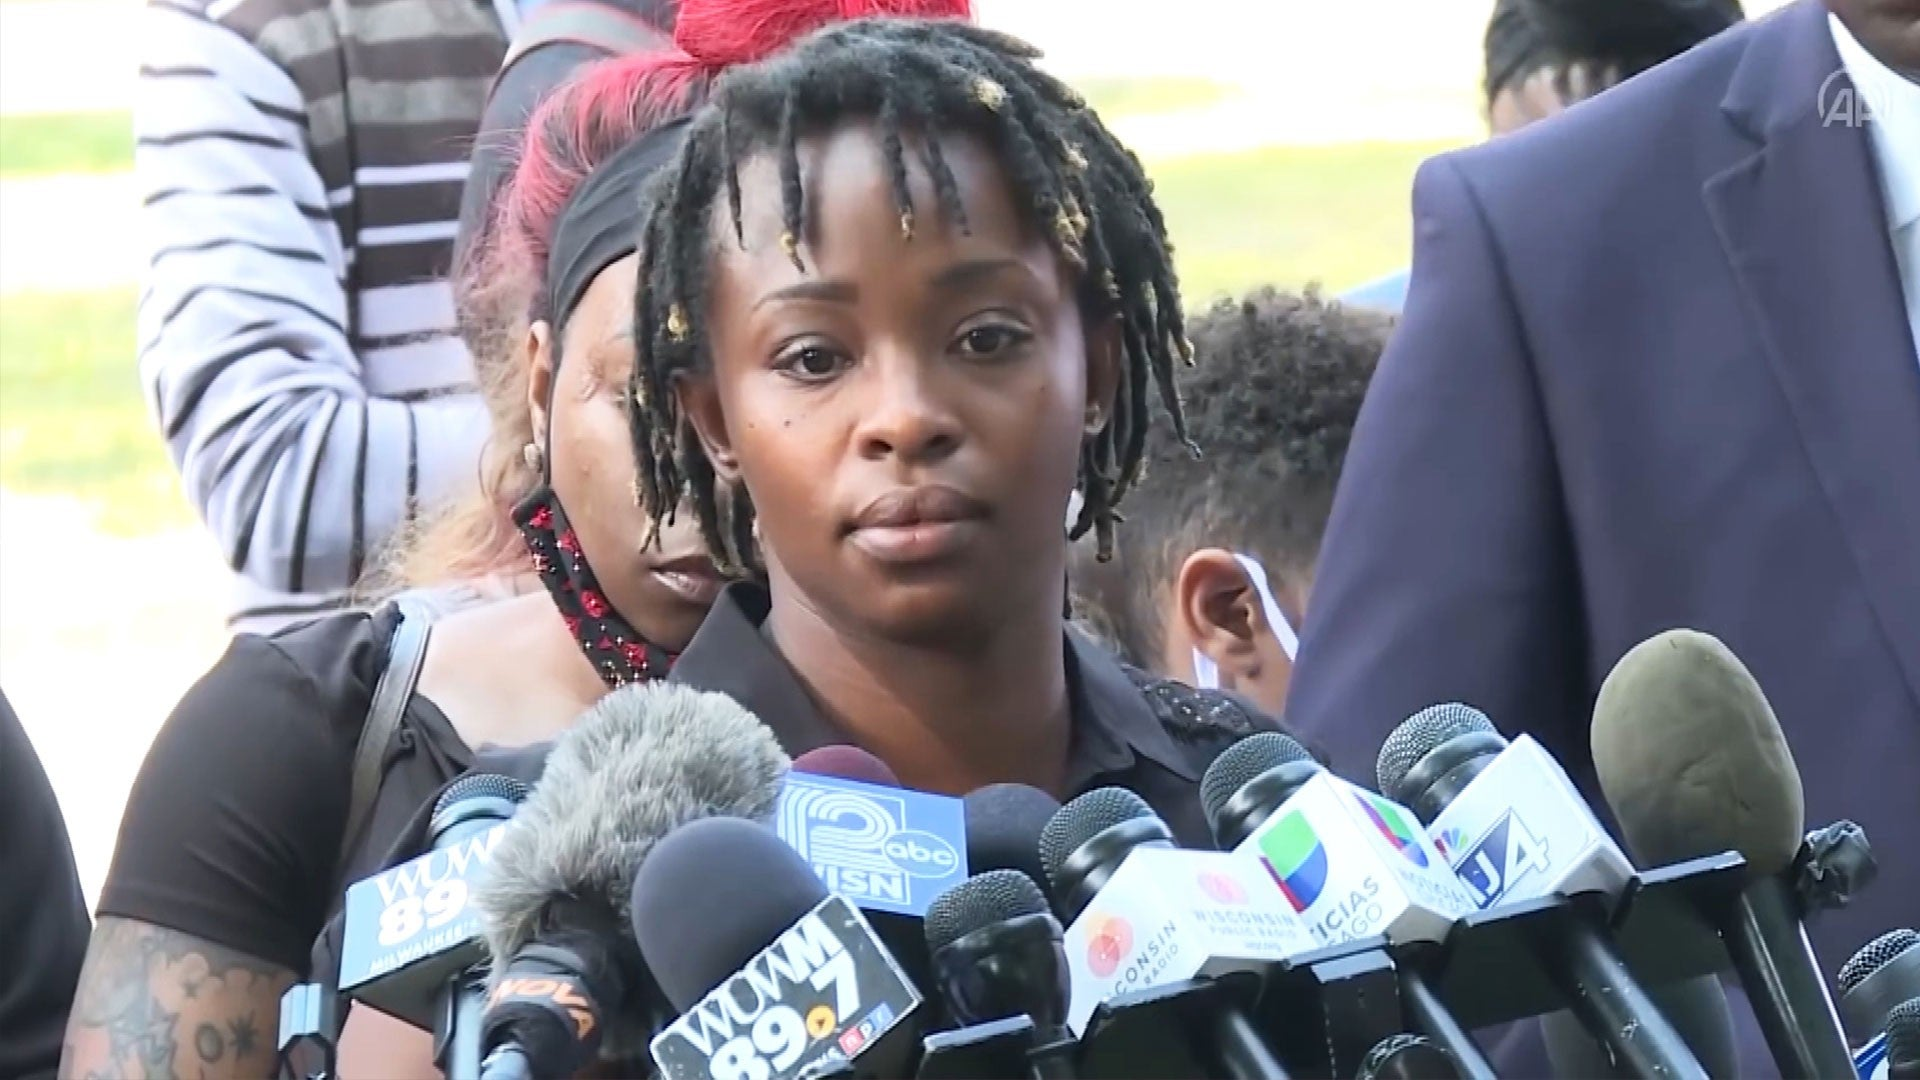 jacob-blakes-sister-says-i-dont-want-your-pity-i-want-change-after-his-shocking-shooting-by-police